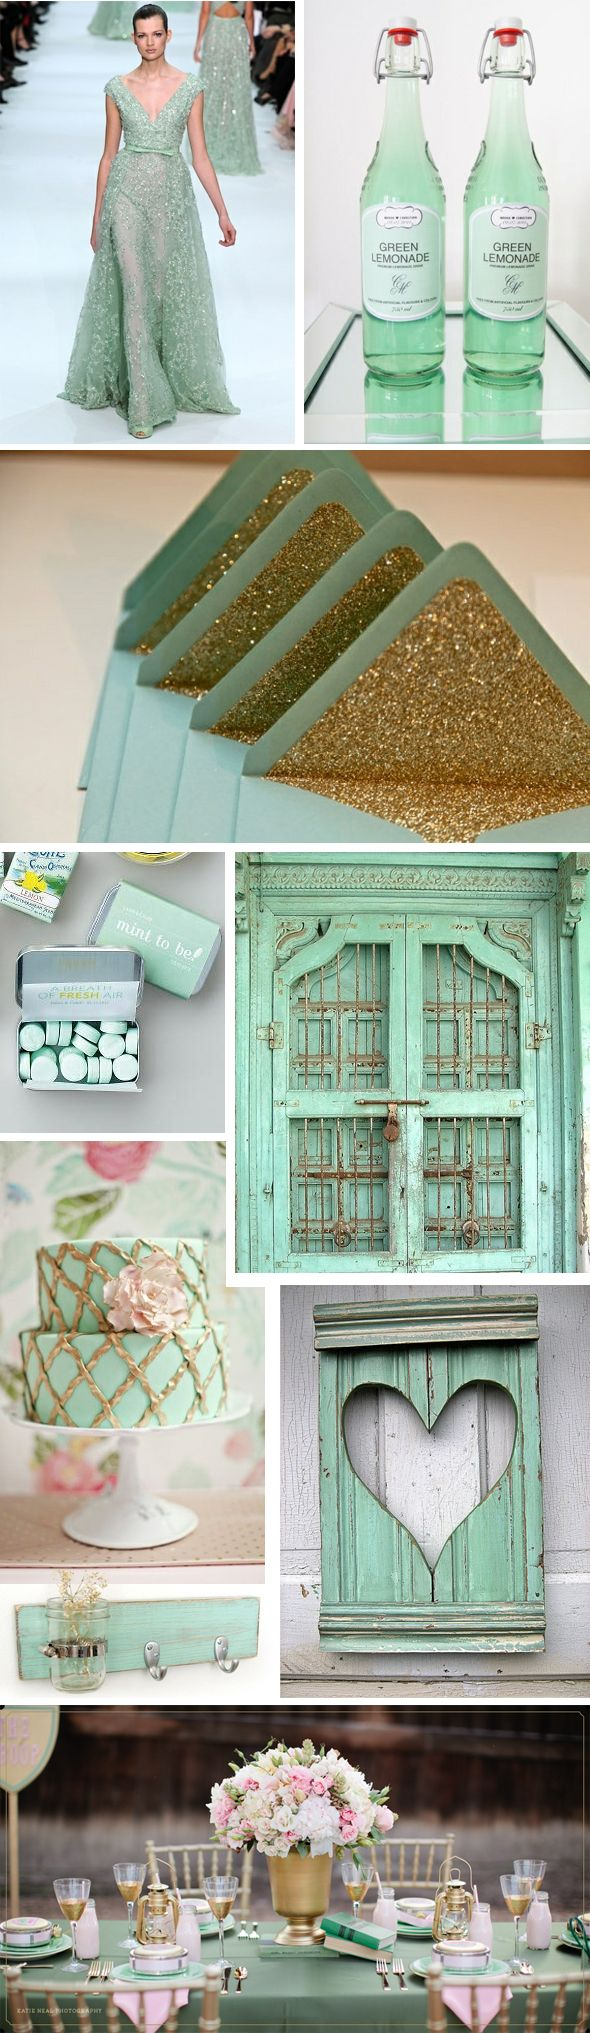 Mint Weddings - Love the color, the gold and mint envelopes, cake and mints!! so pretty!